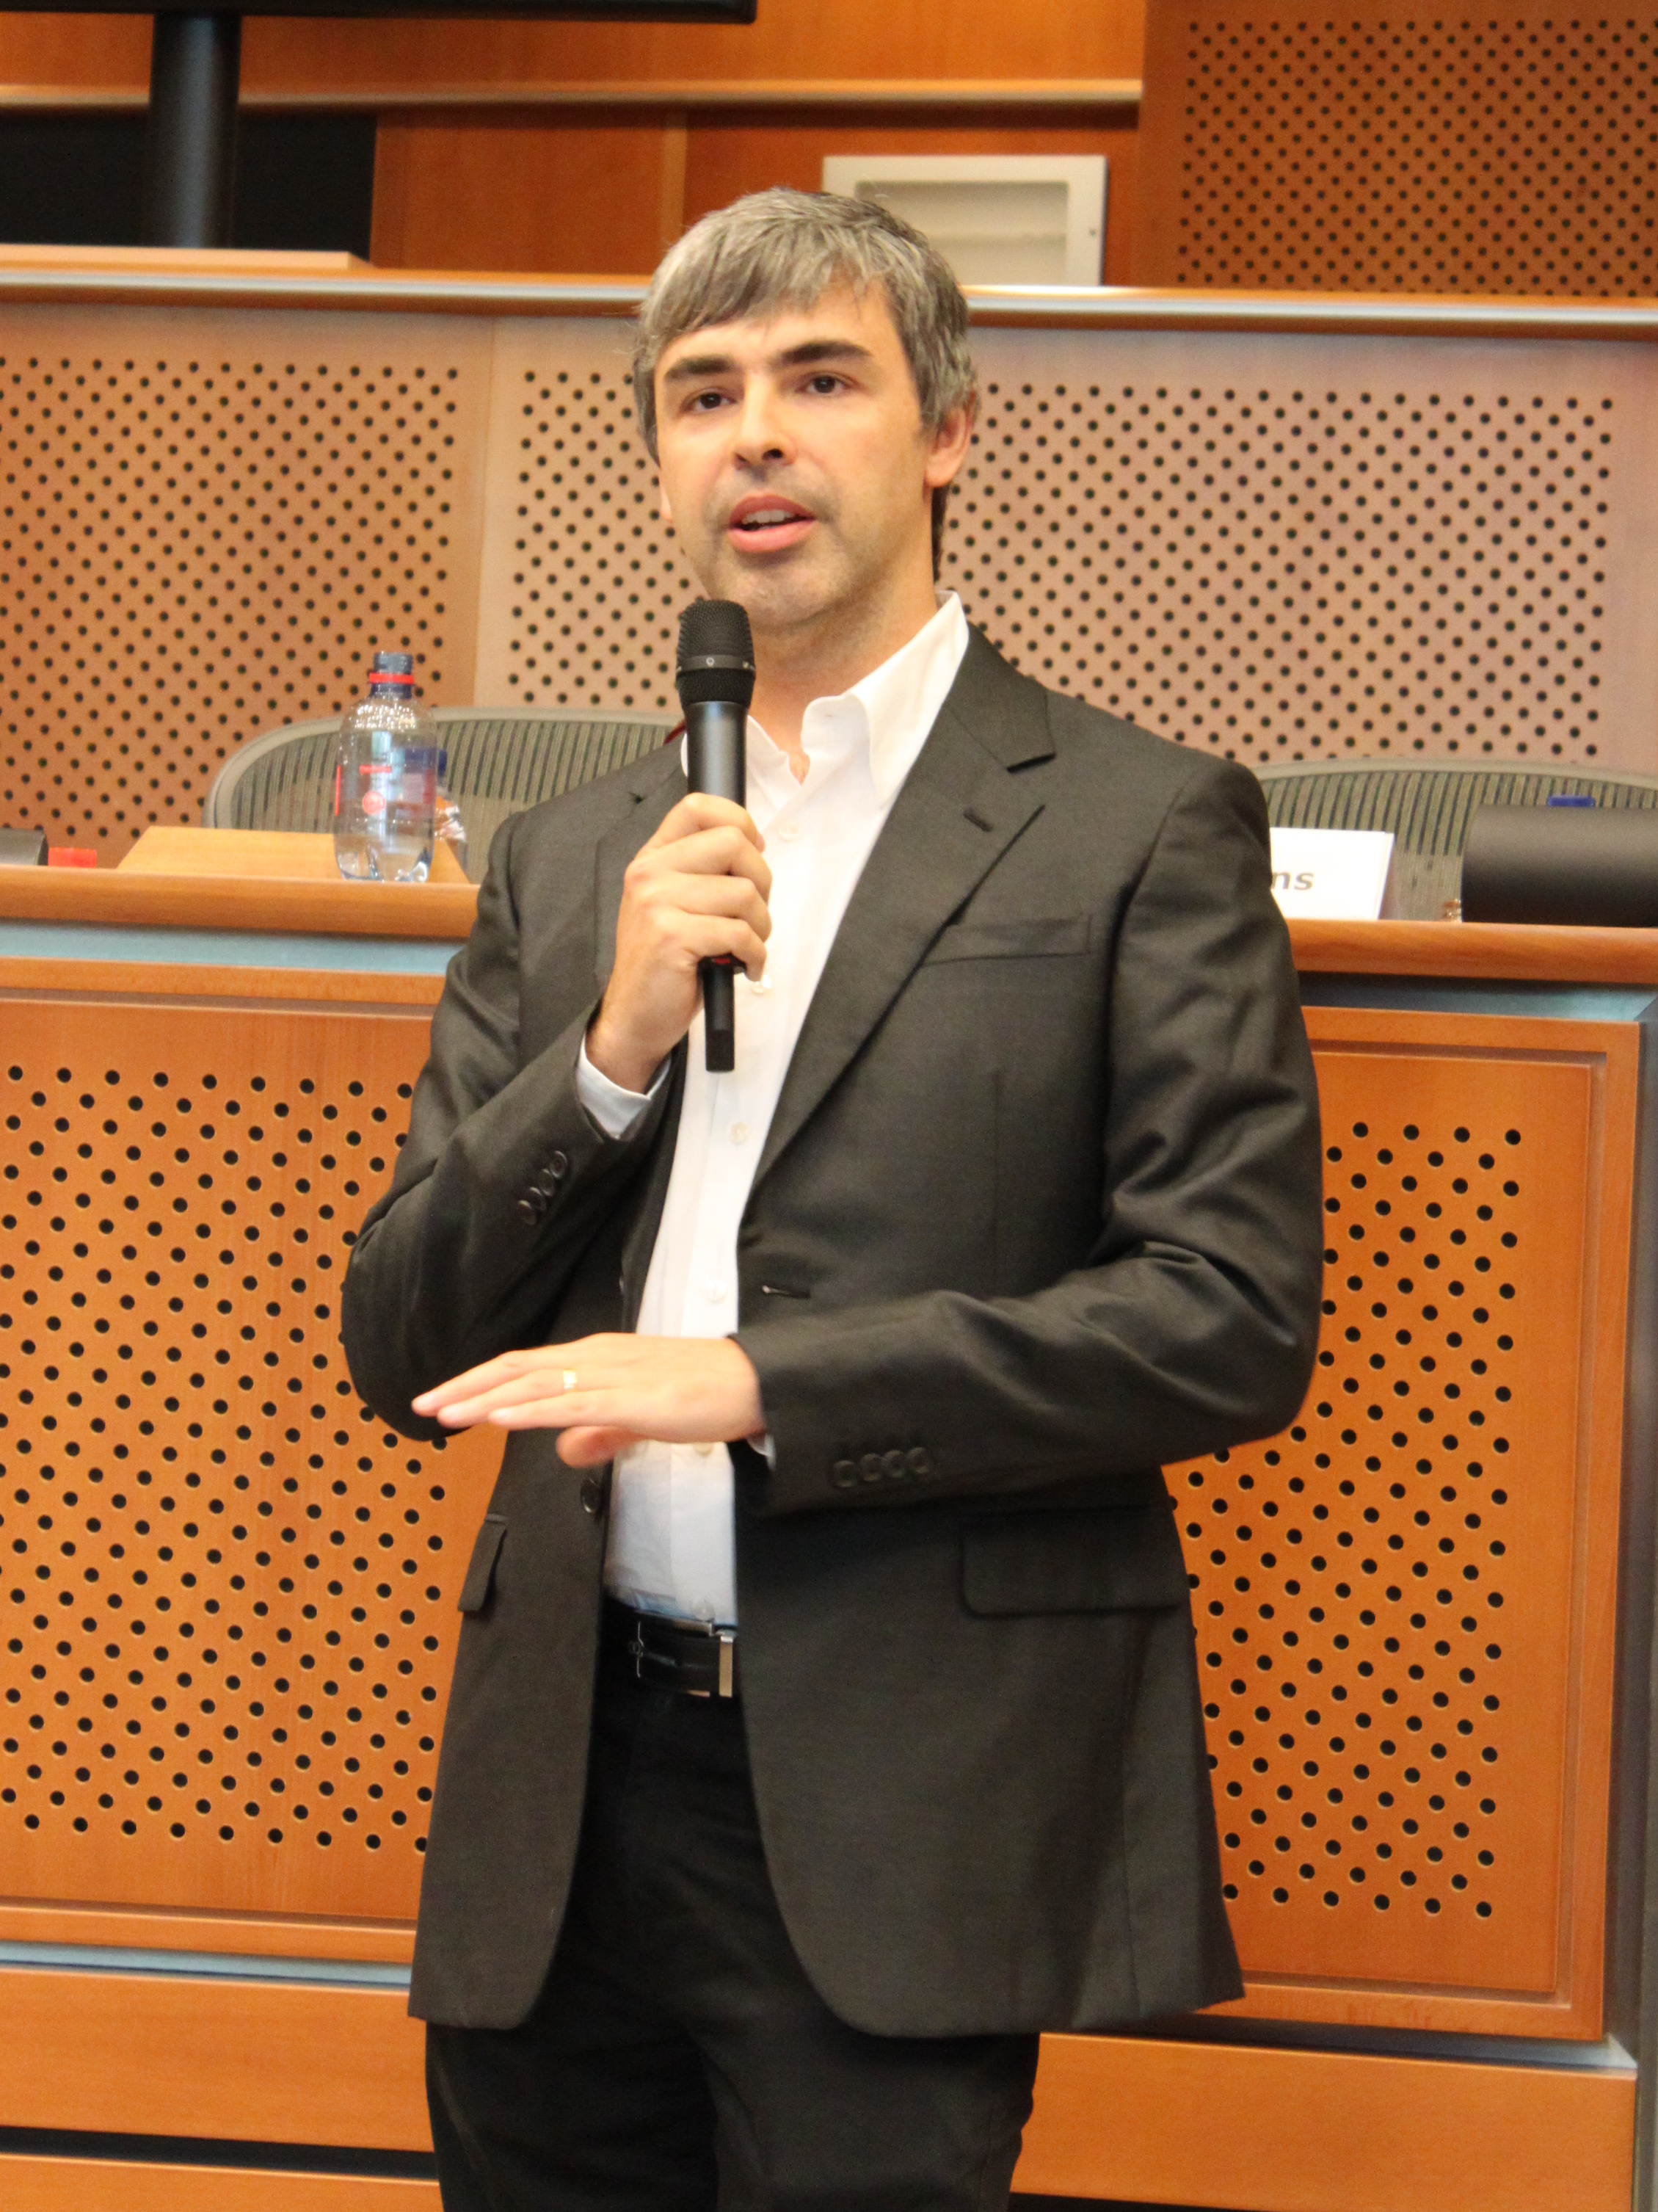 Larry Page - Wikipedia